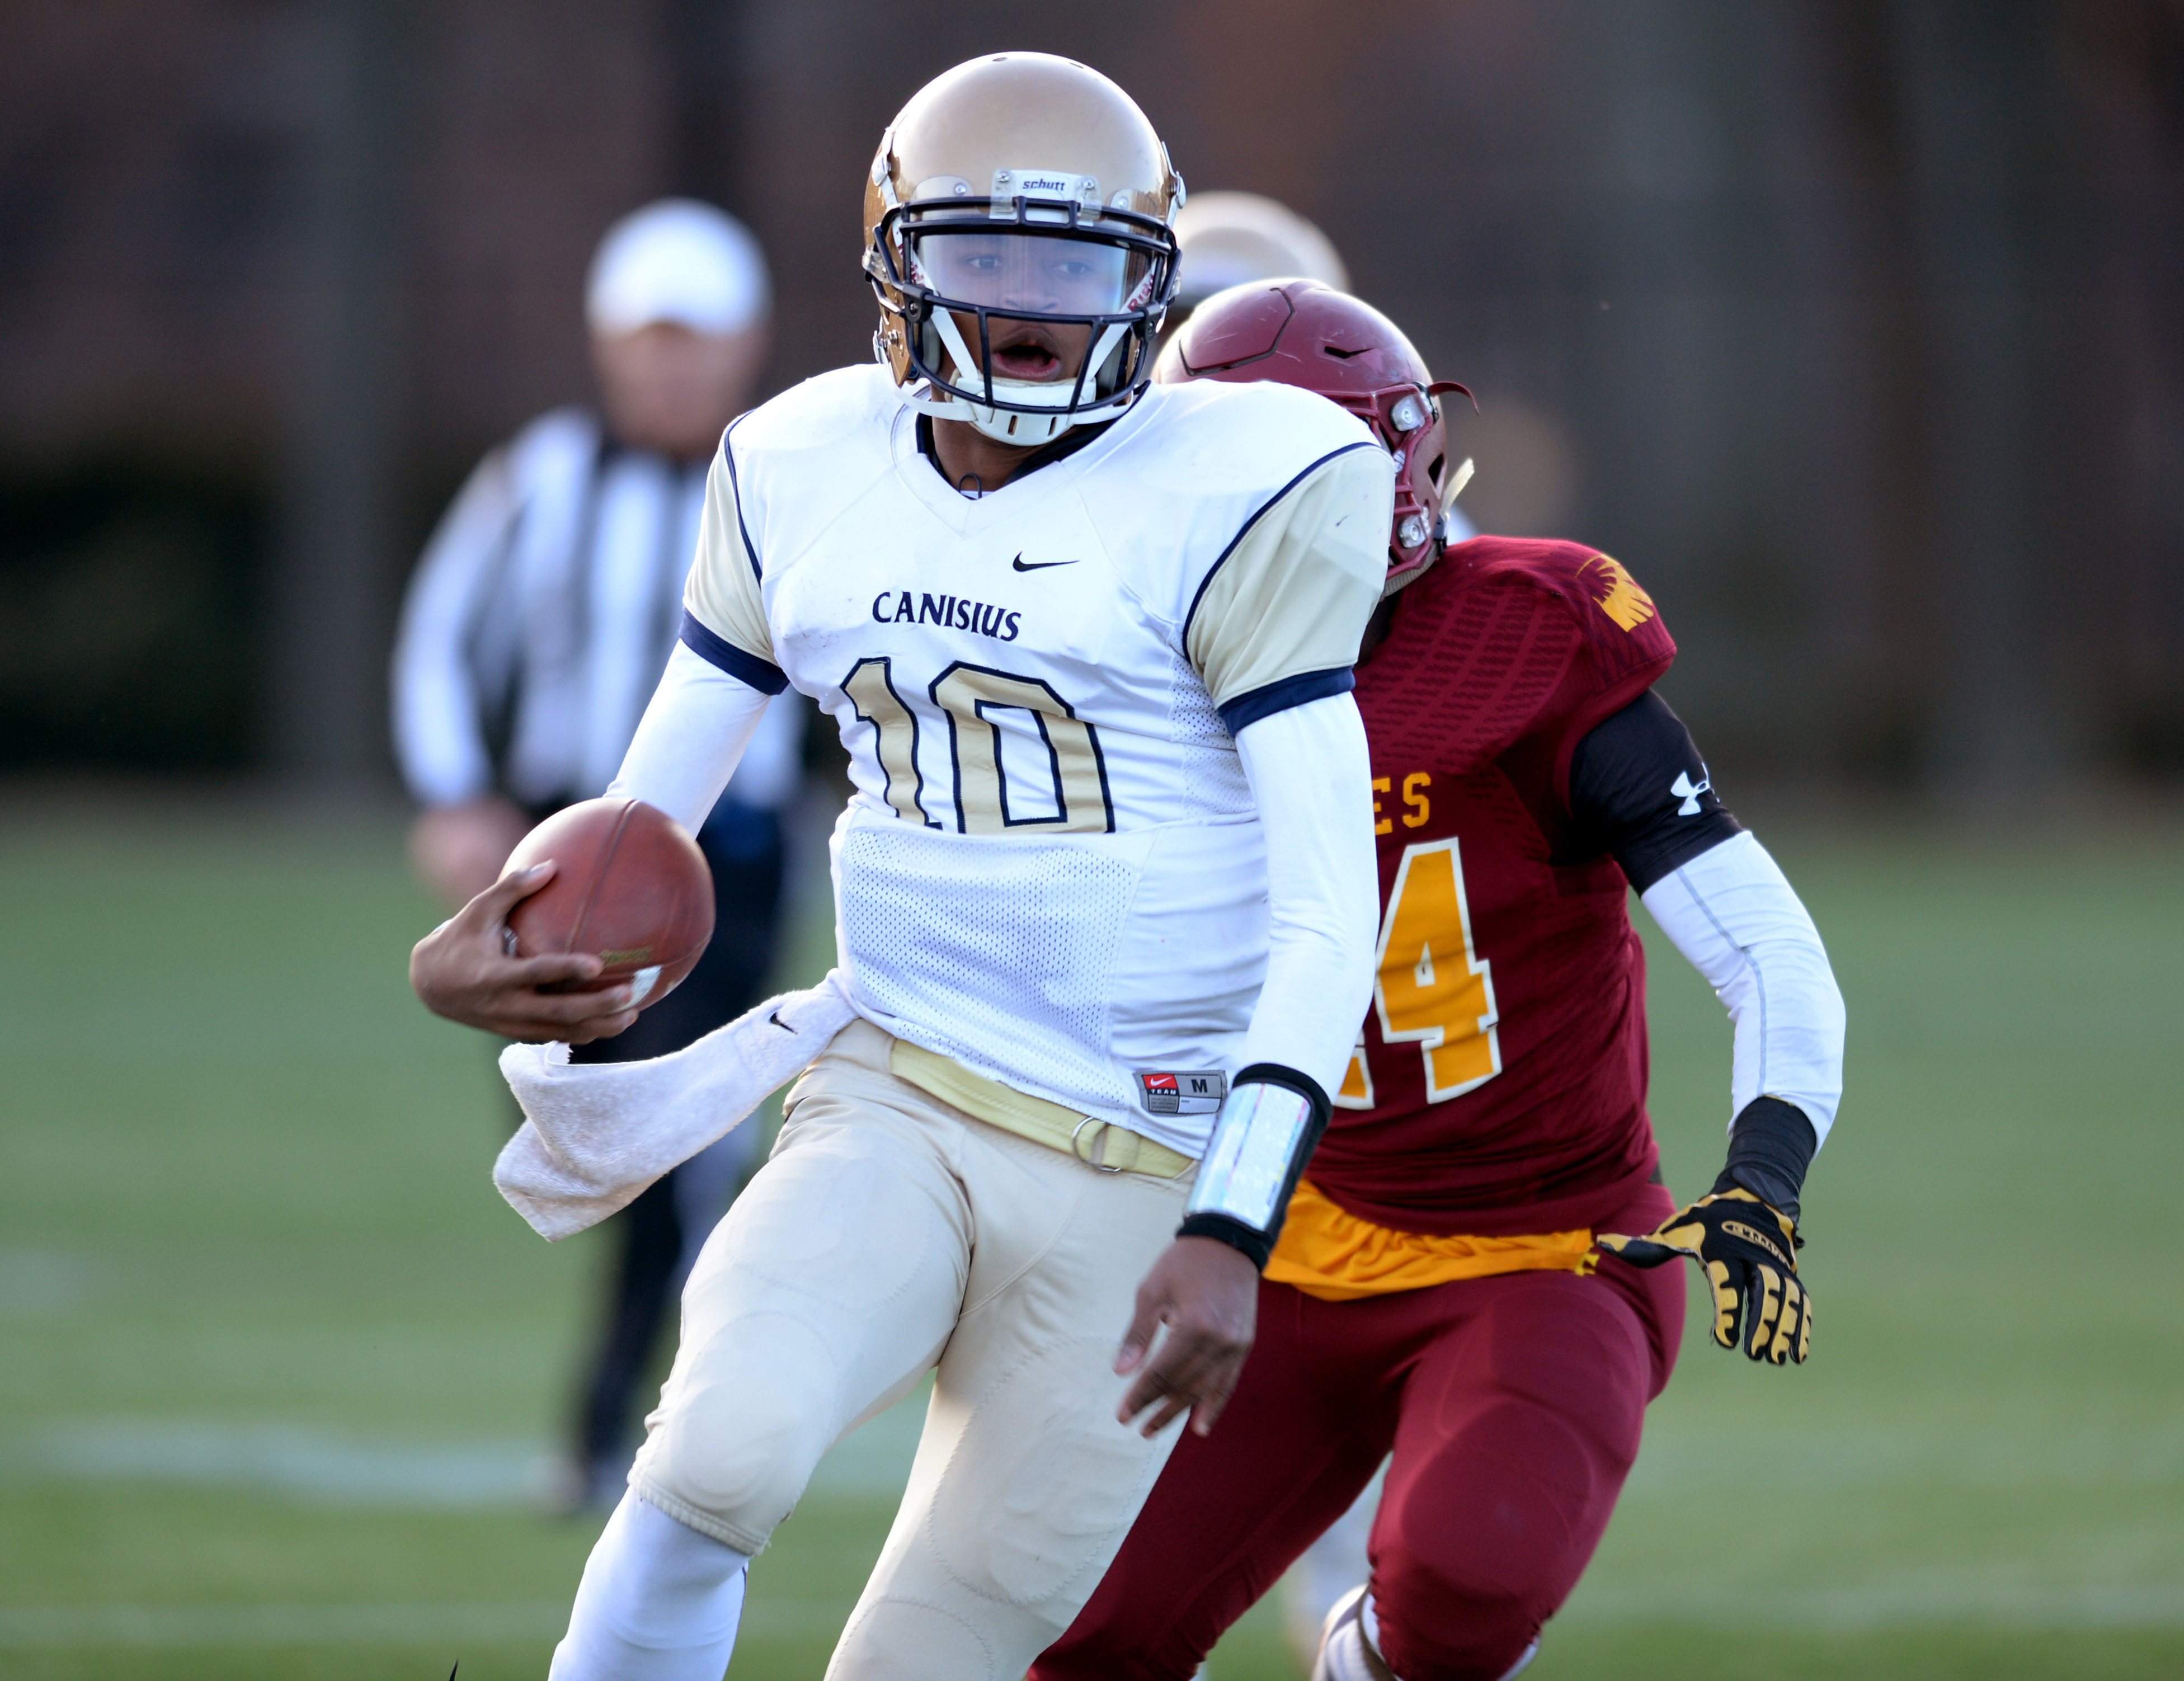 Canisius junior quarterback Jayce Johnson runs with the ball against Cardinal Hayes during the New York State Catholic High School Athletic Association championship on Sunday. (Special to The News/Damion Reid)